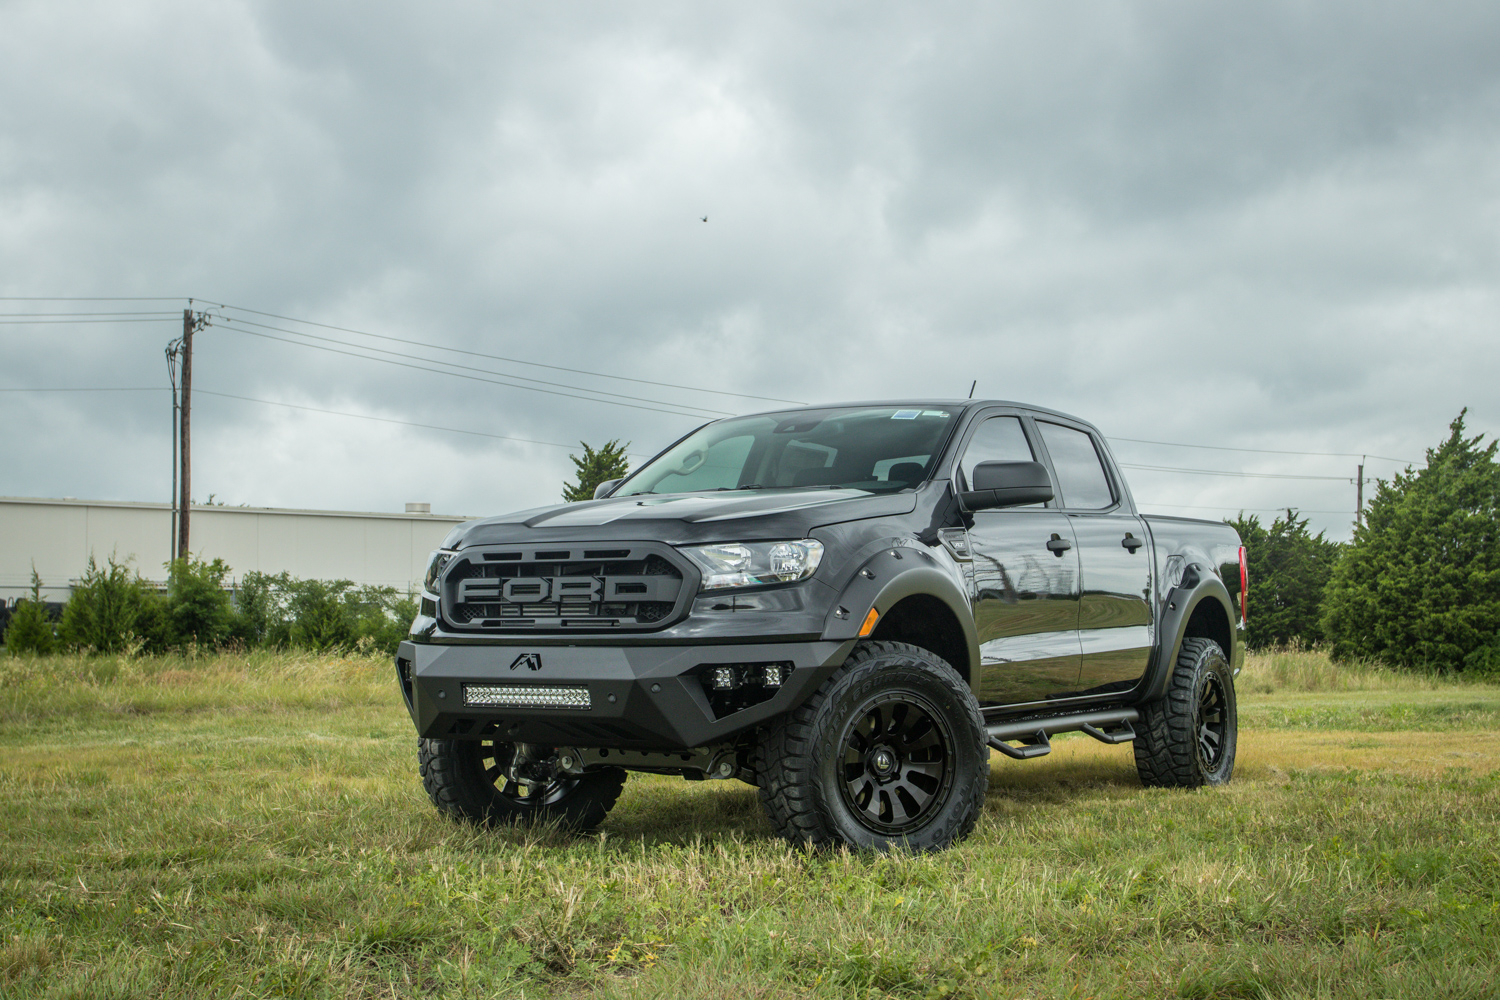 New Ford Ranger 4x4 Lifted With Raptor Style Grill And